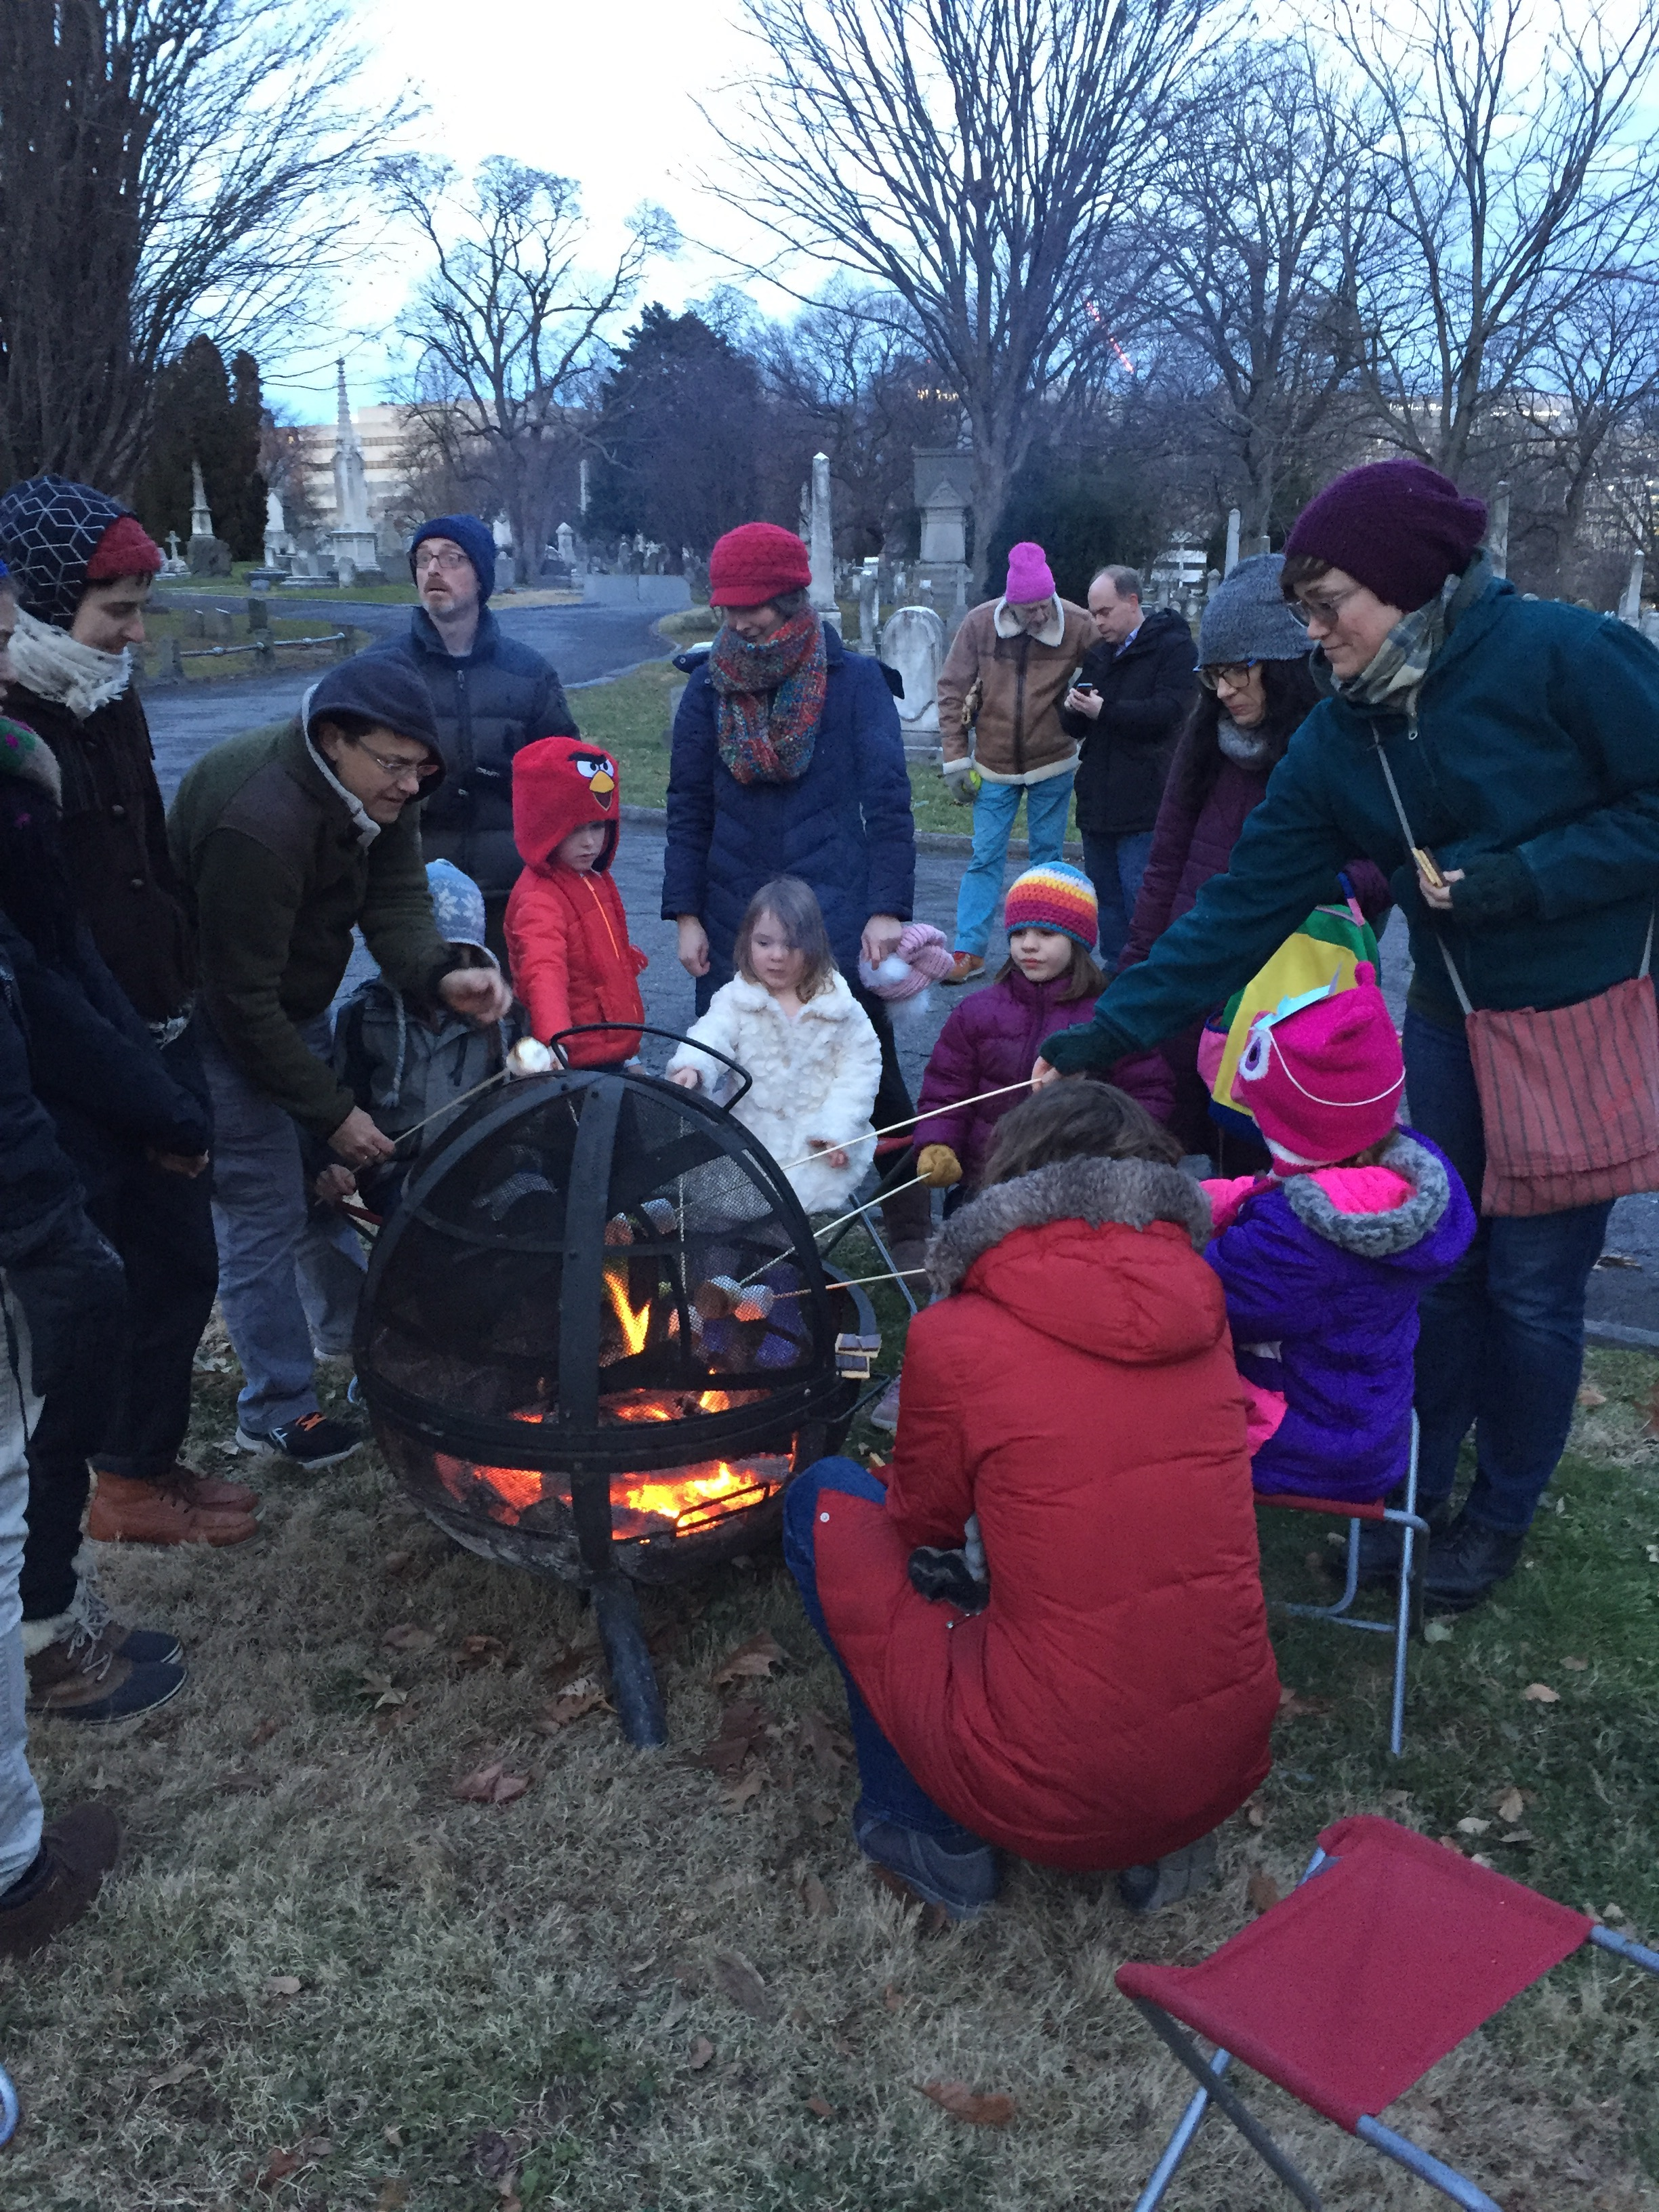 What's better than birding? Birding + s'mores!